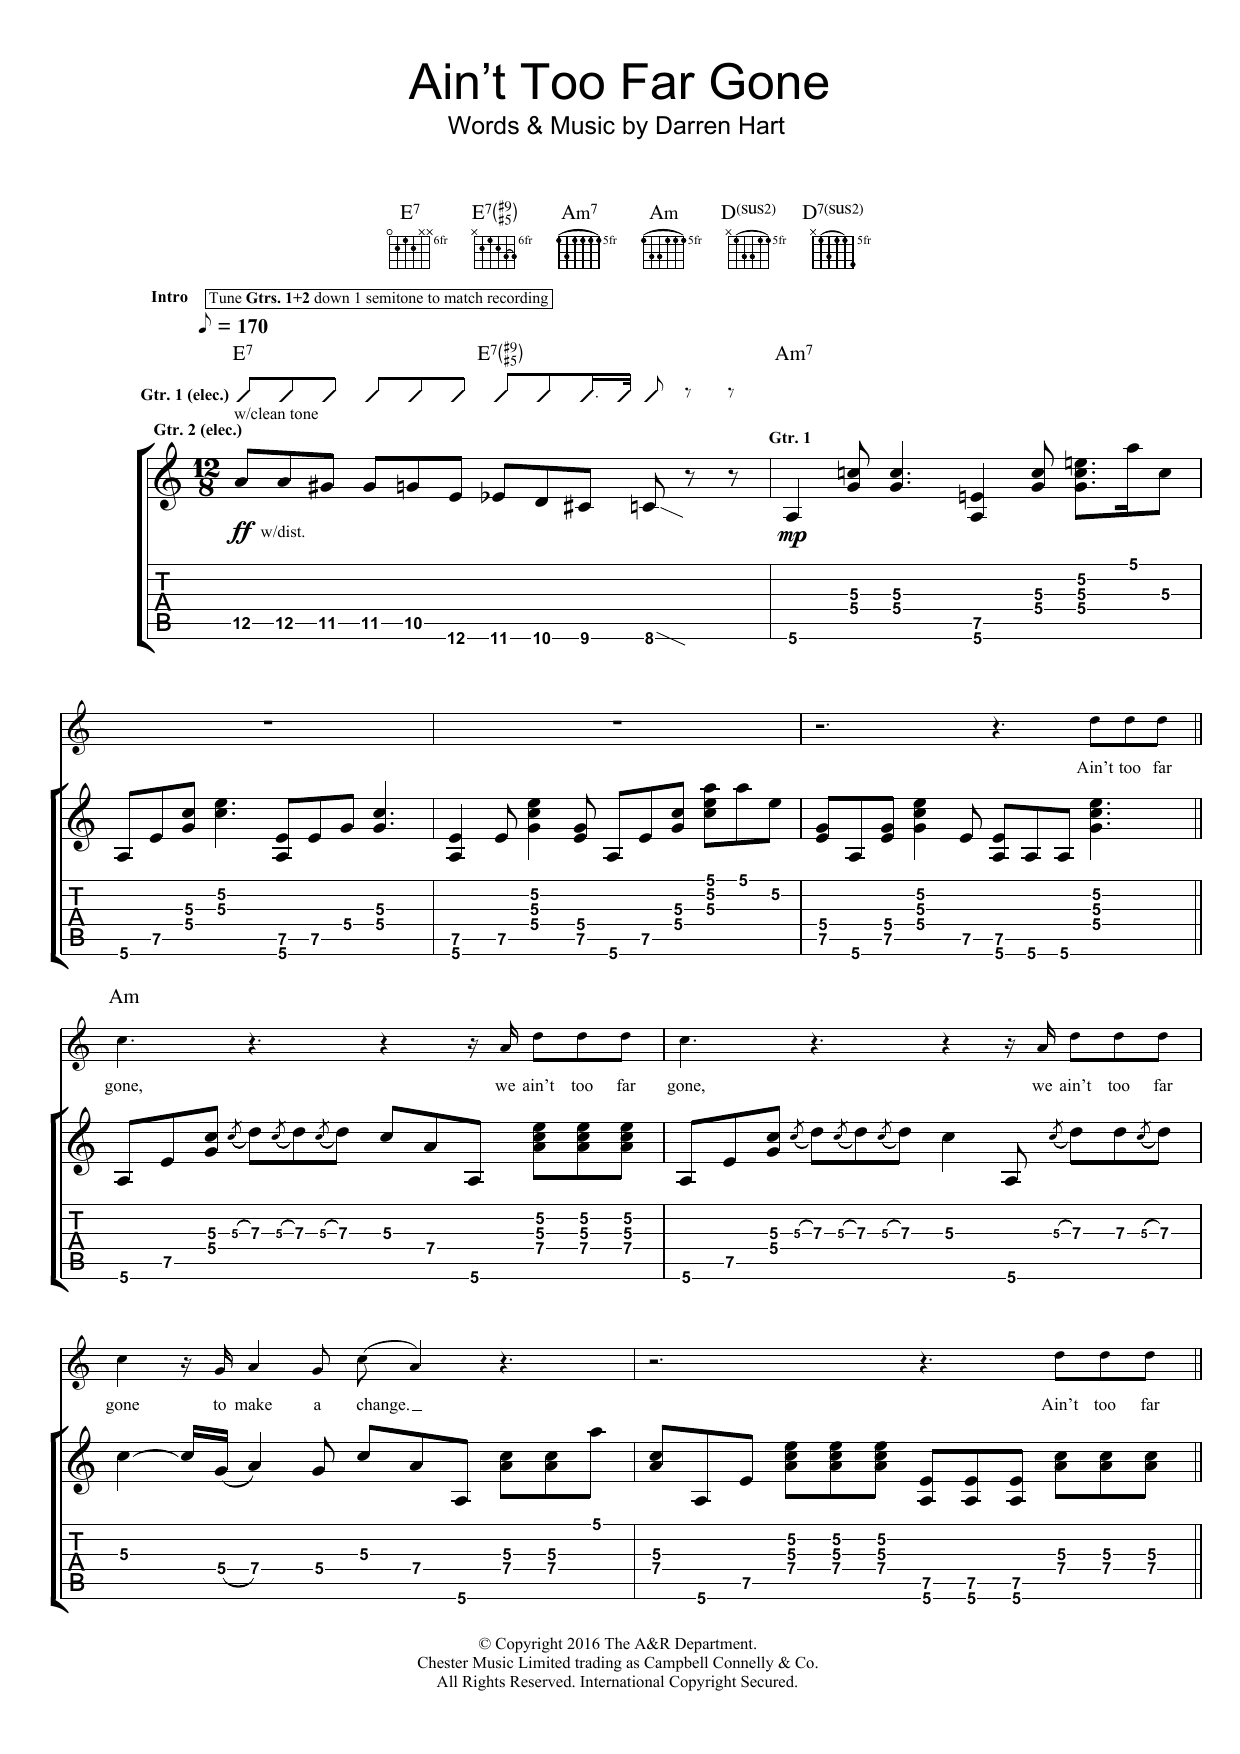 Ain't Too Far Gone Sheet Music